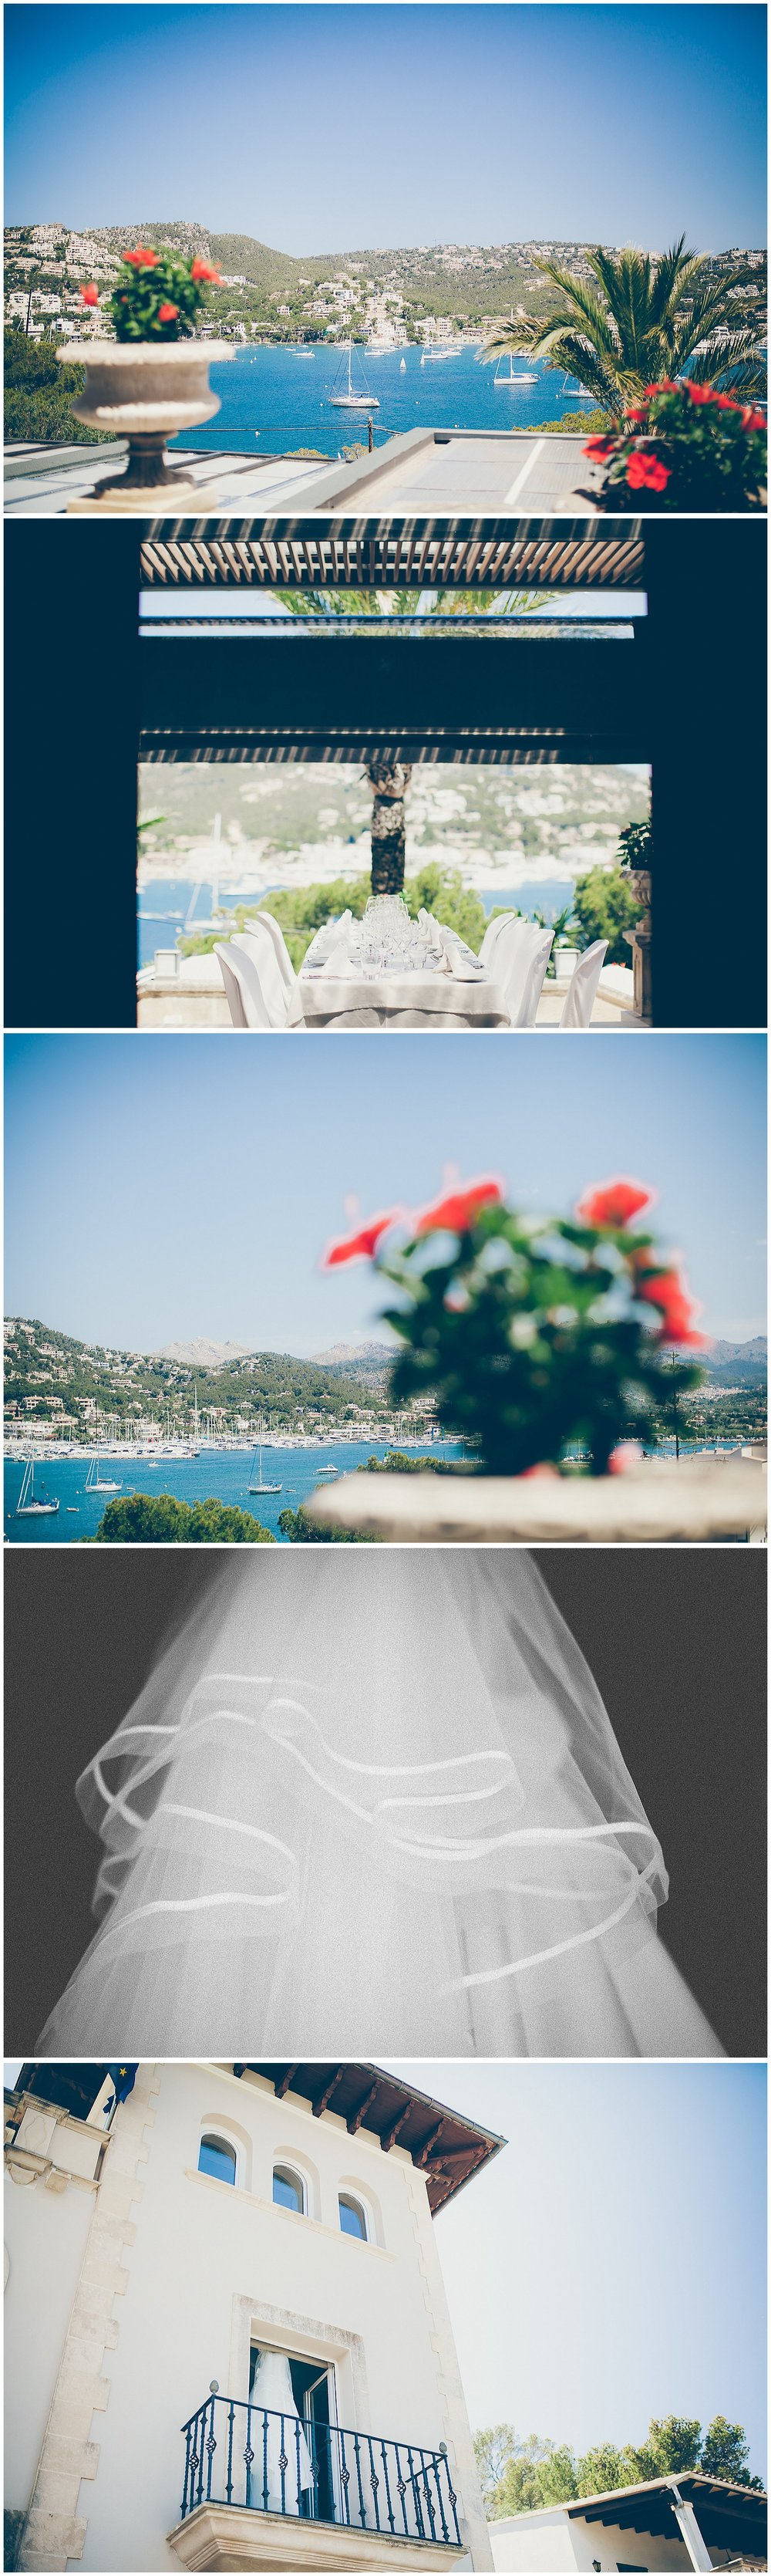 Church_VillaItalia_MallorcaWedding_FionaClairPhotography-3.jpg